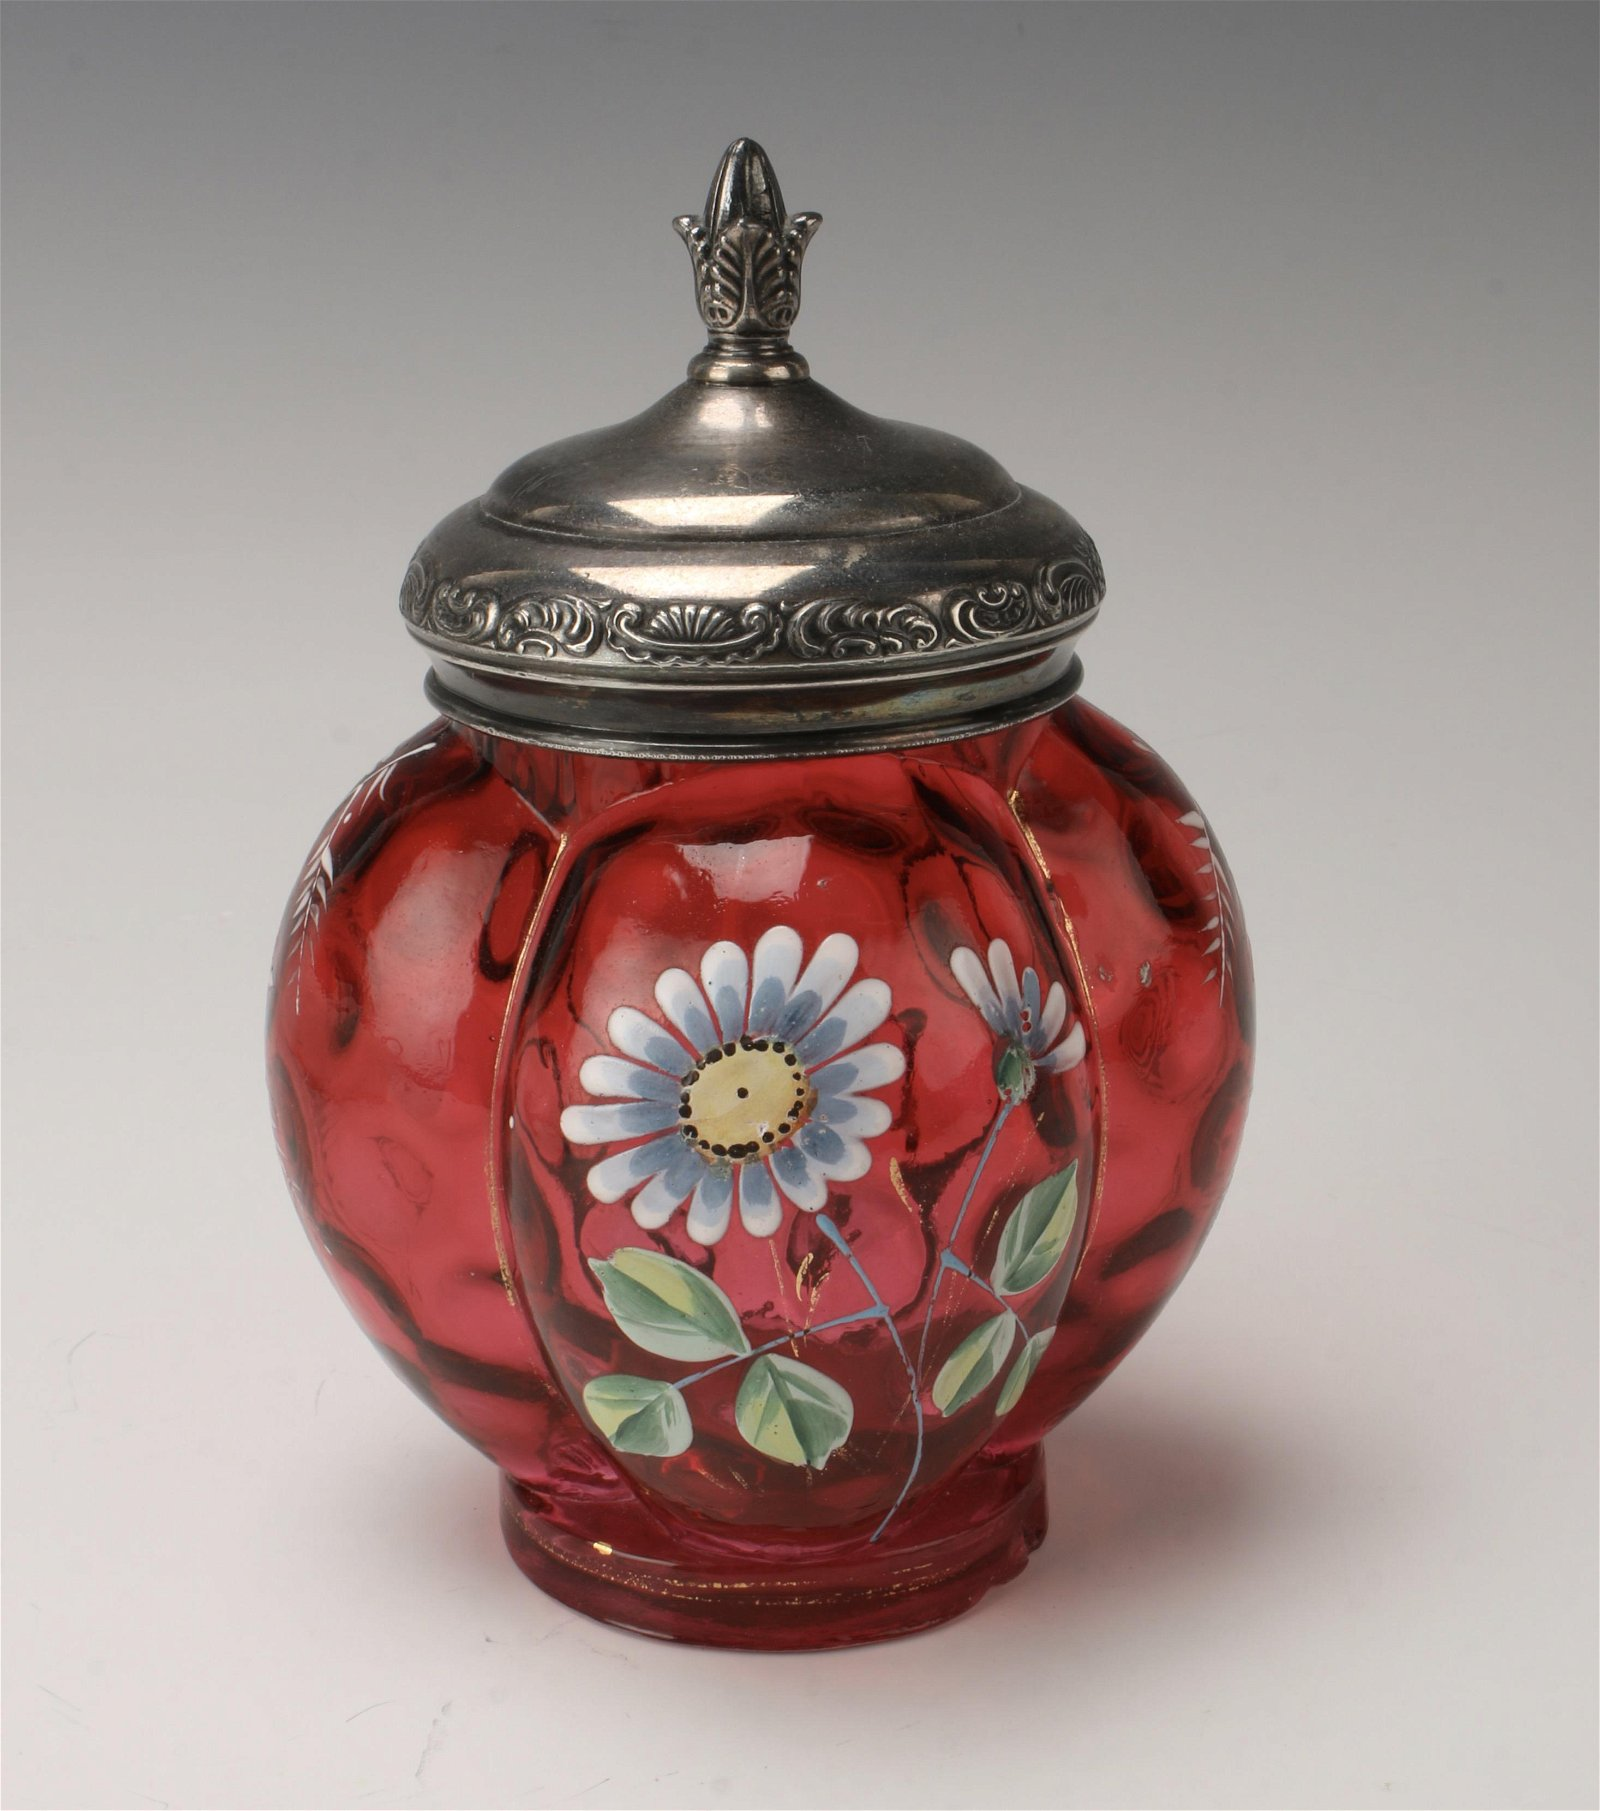 LATE VICTORIAN CRANBERRY GLASS LOBED JAR